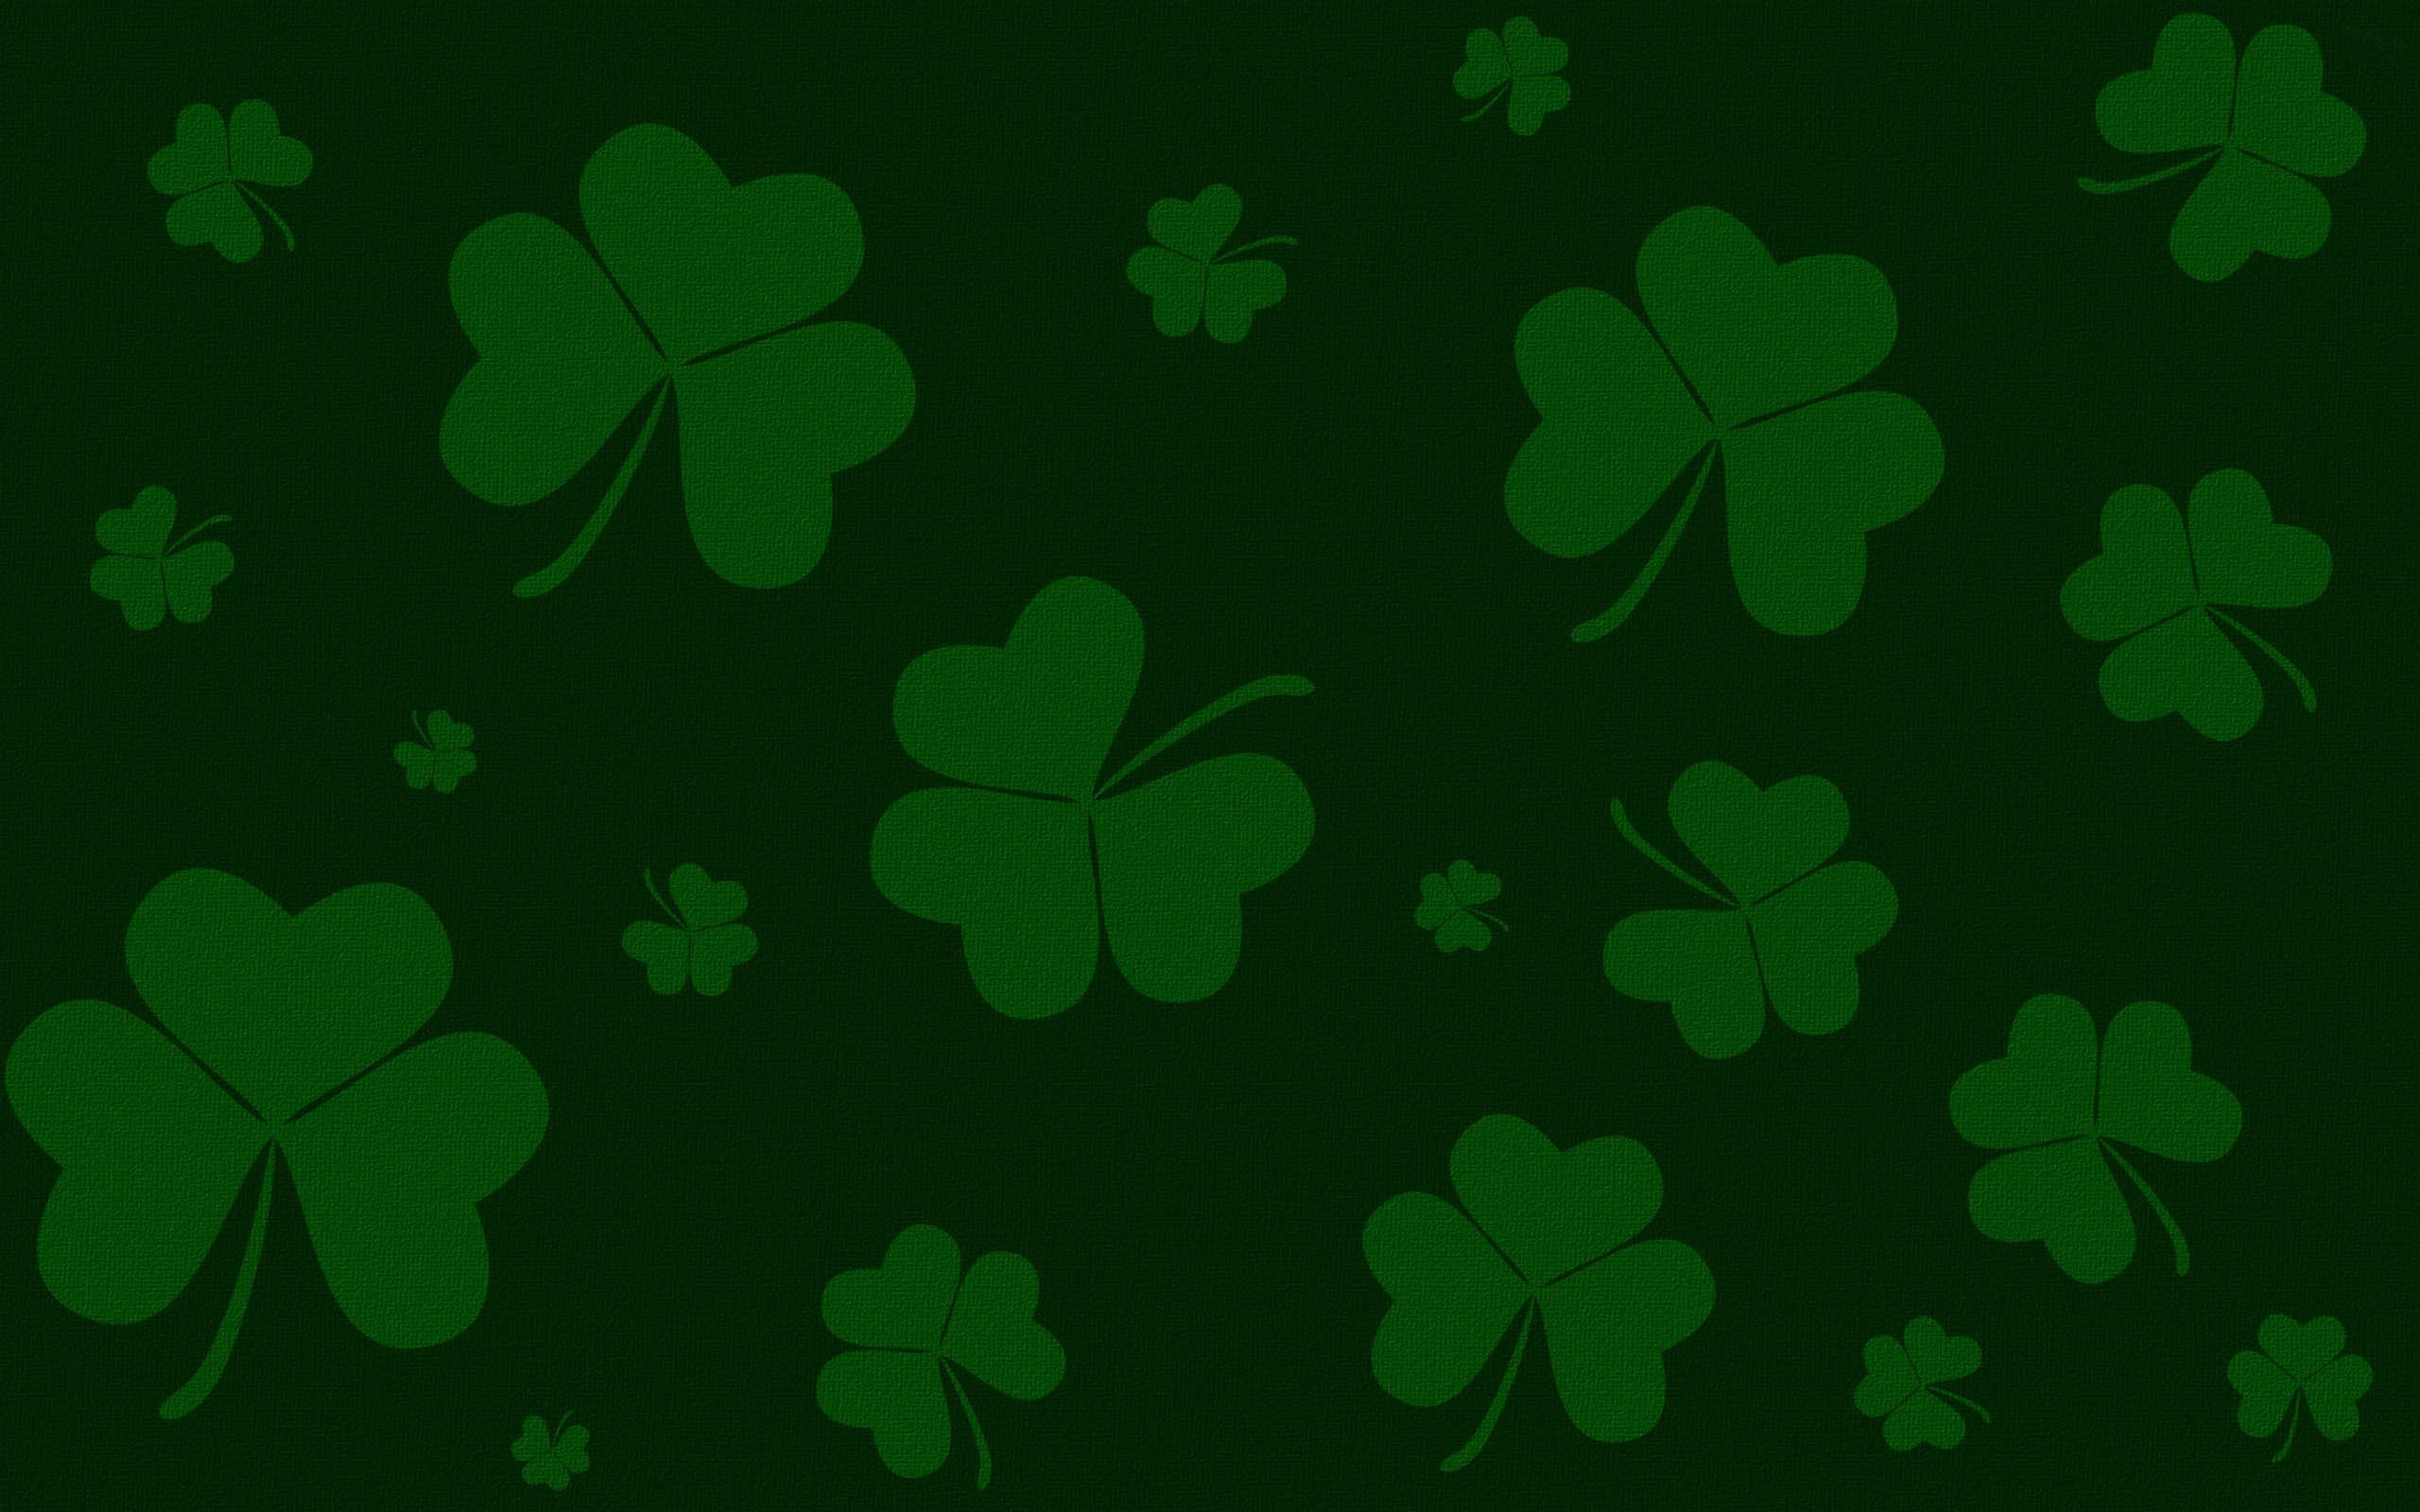 2560x1600 Happy St Patrick's Day PC Background Wallpaper 2880x1800 - Cool PC  Wallpapers